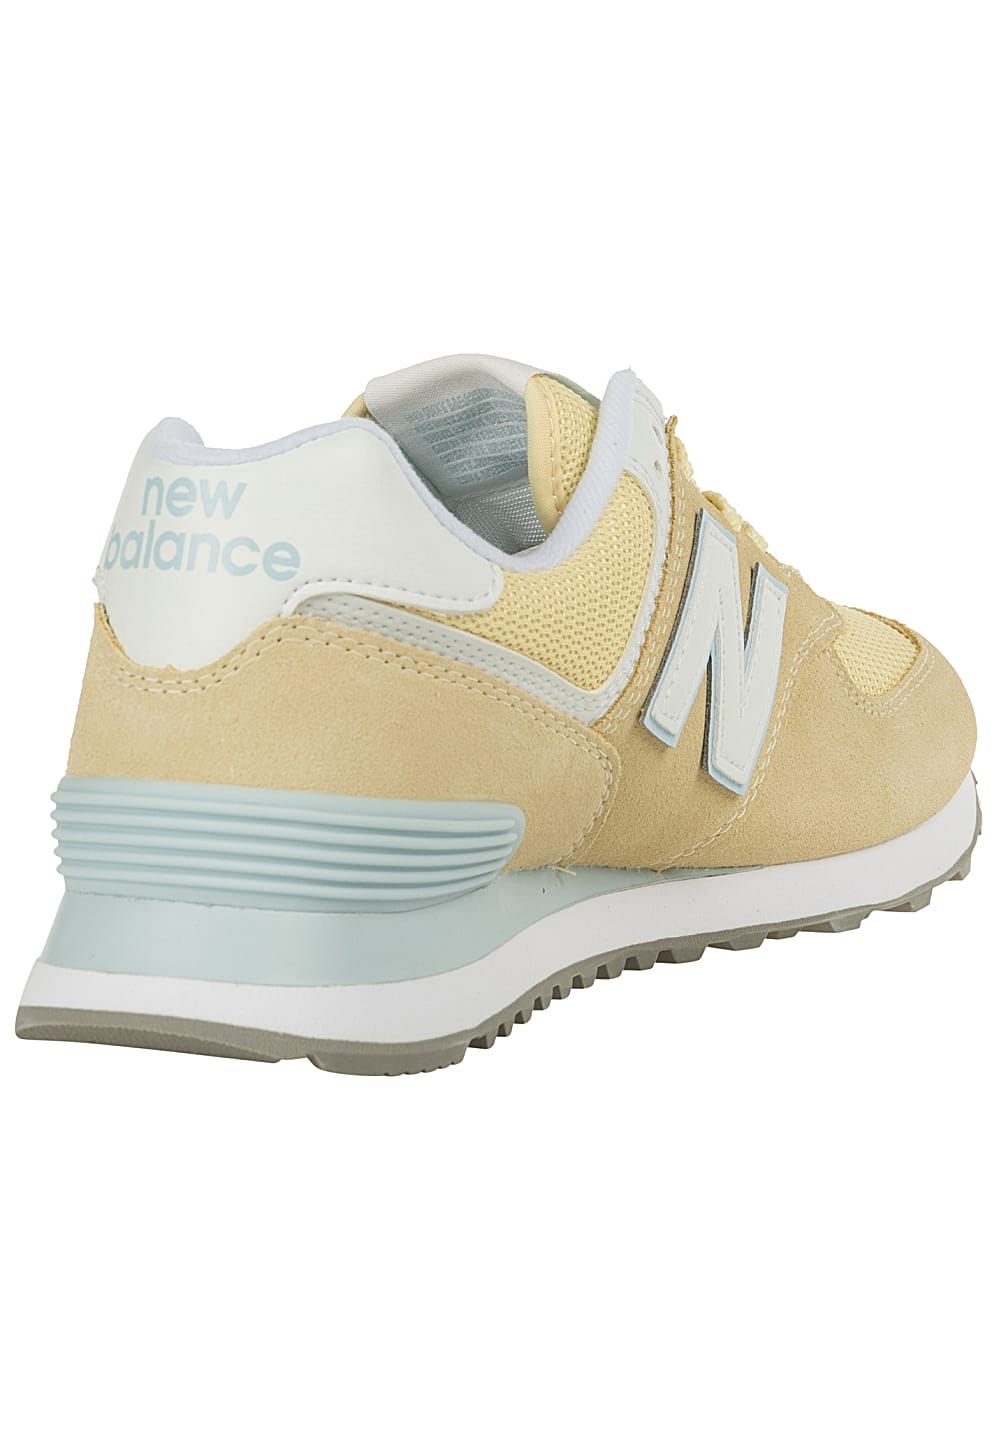 66ae61060dea2c NEW BALANCE WL574 B - Sneaker für Damen - Gelb - Planet Sports